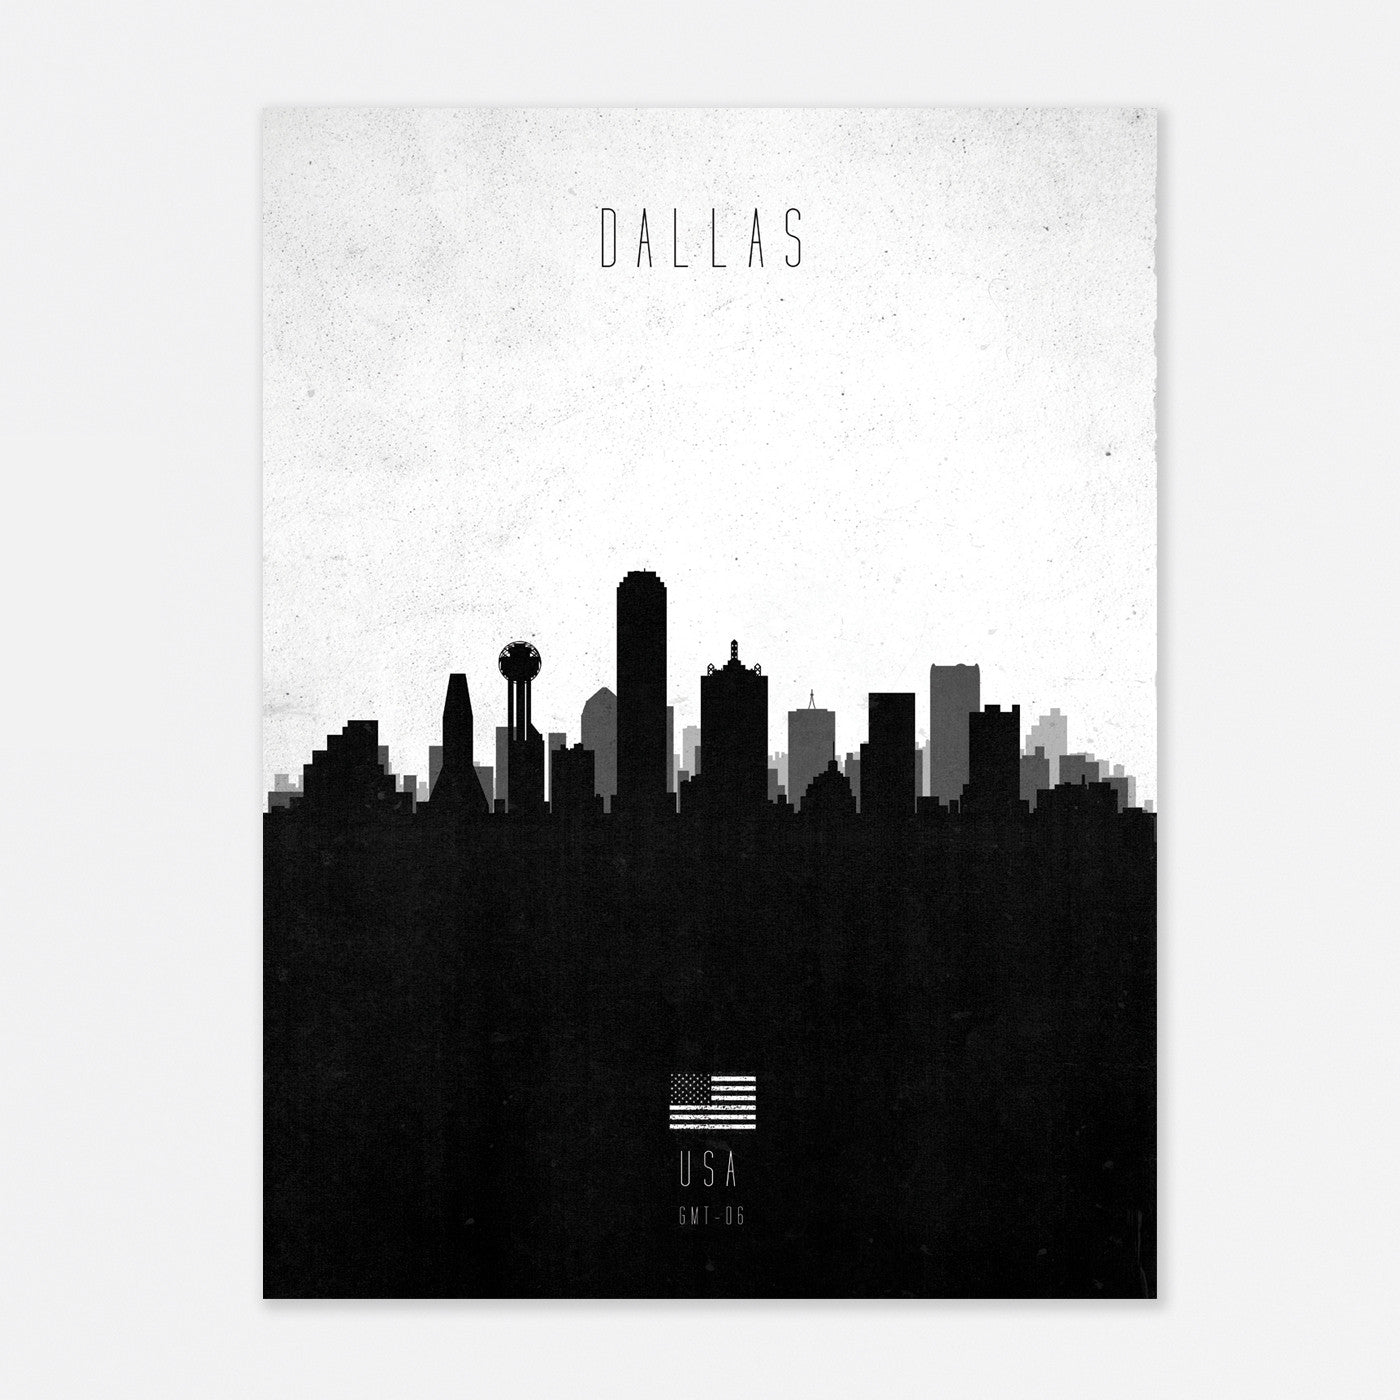 Dallas: GMT -06